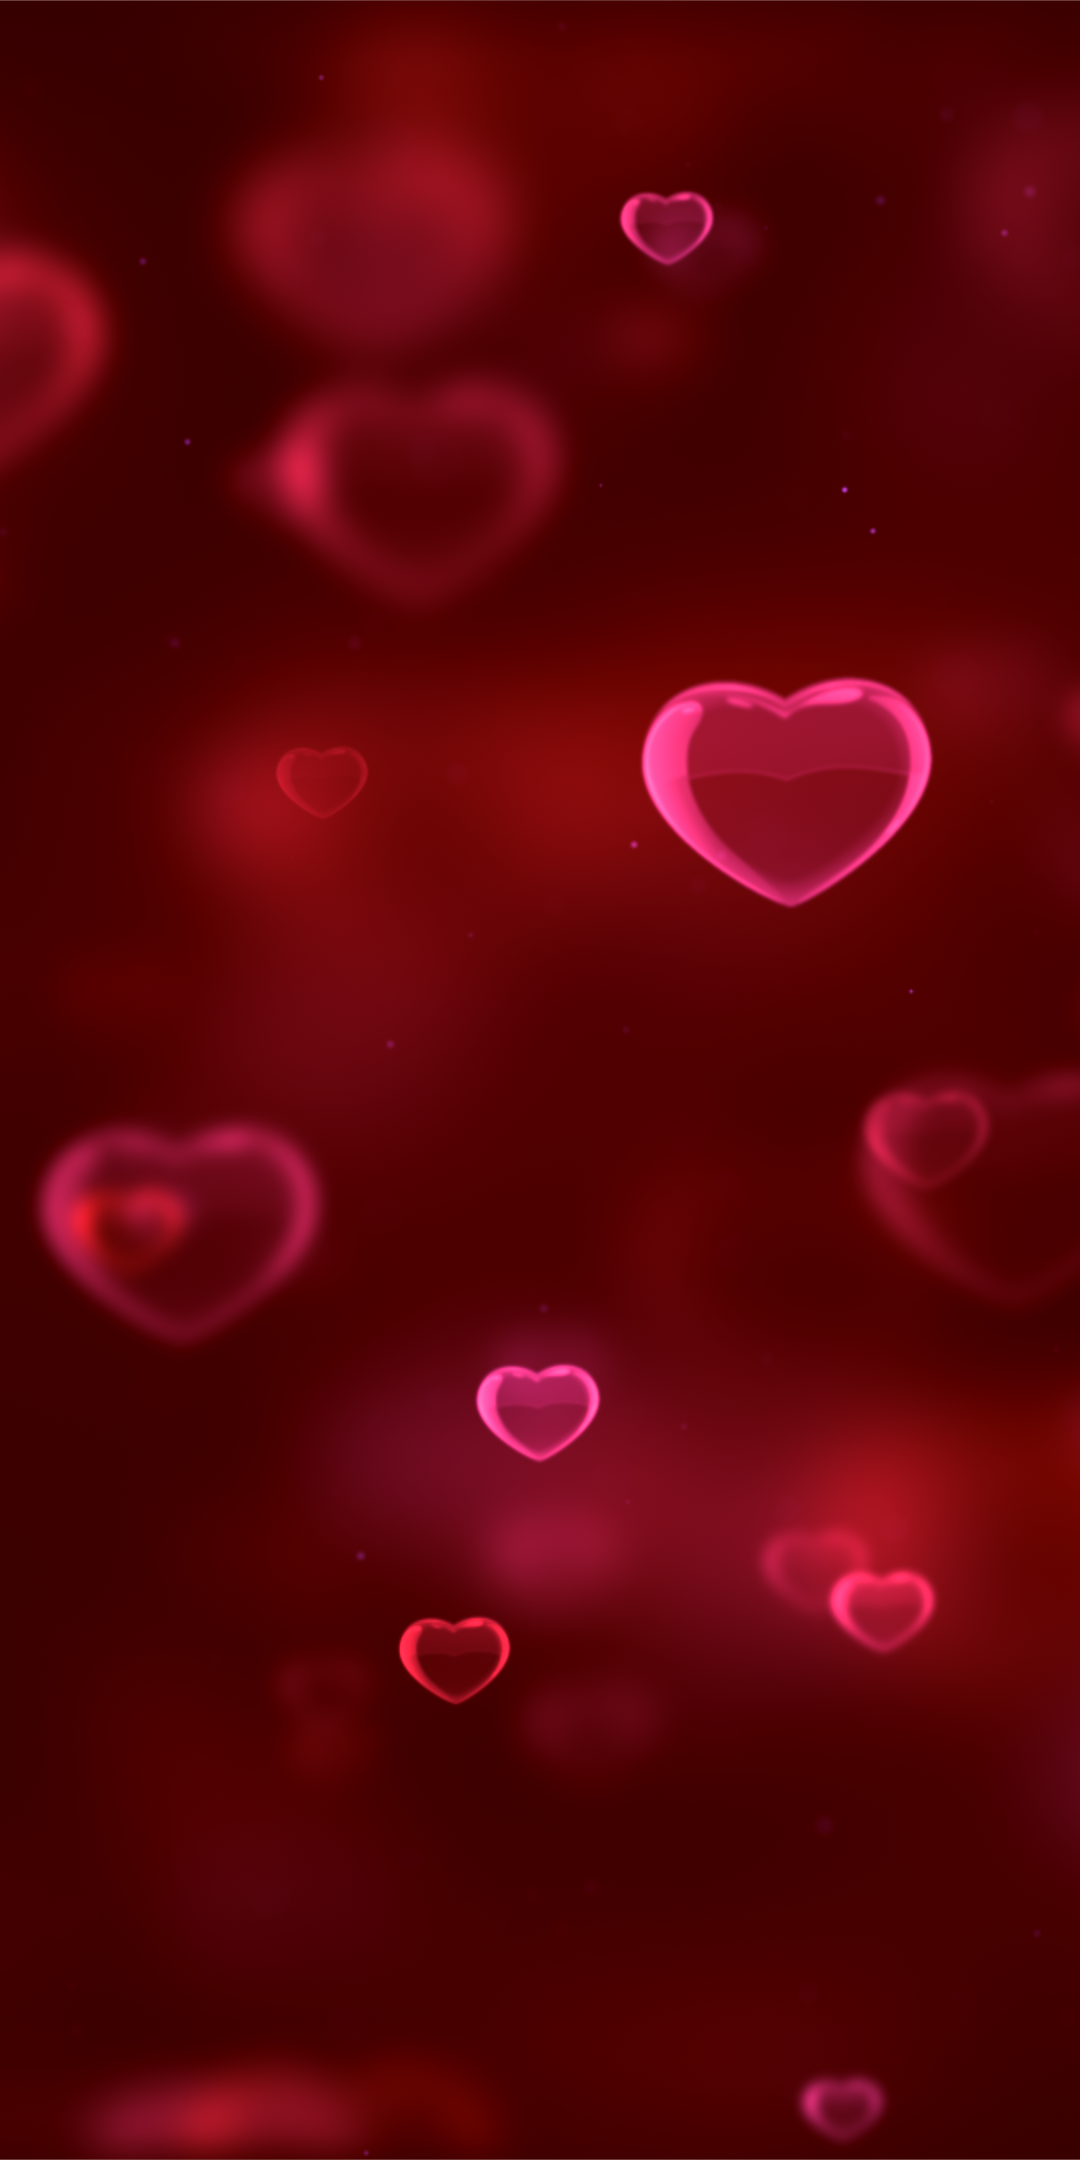 Love Red Hearts Girly Pink Blur 1080x2160 Wallpaper In